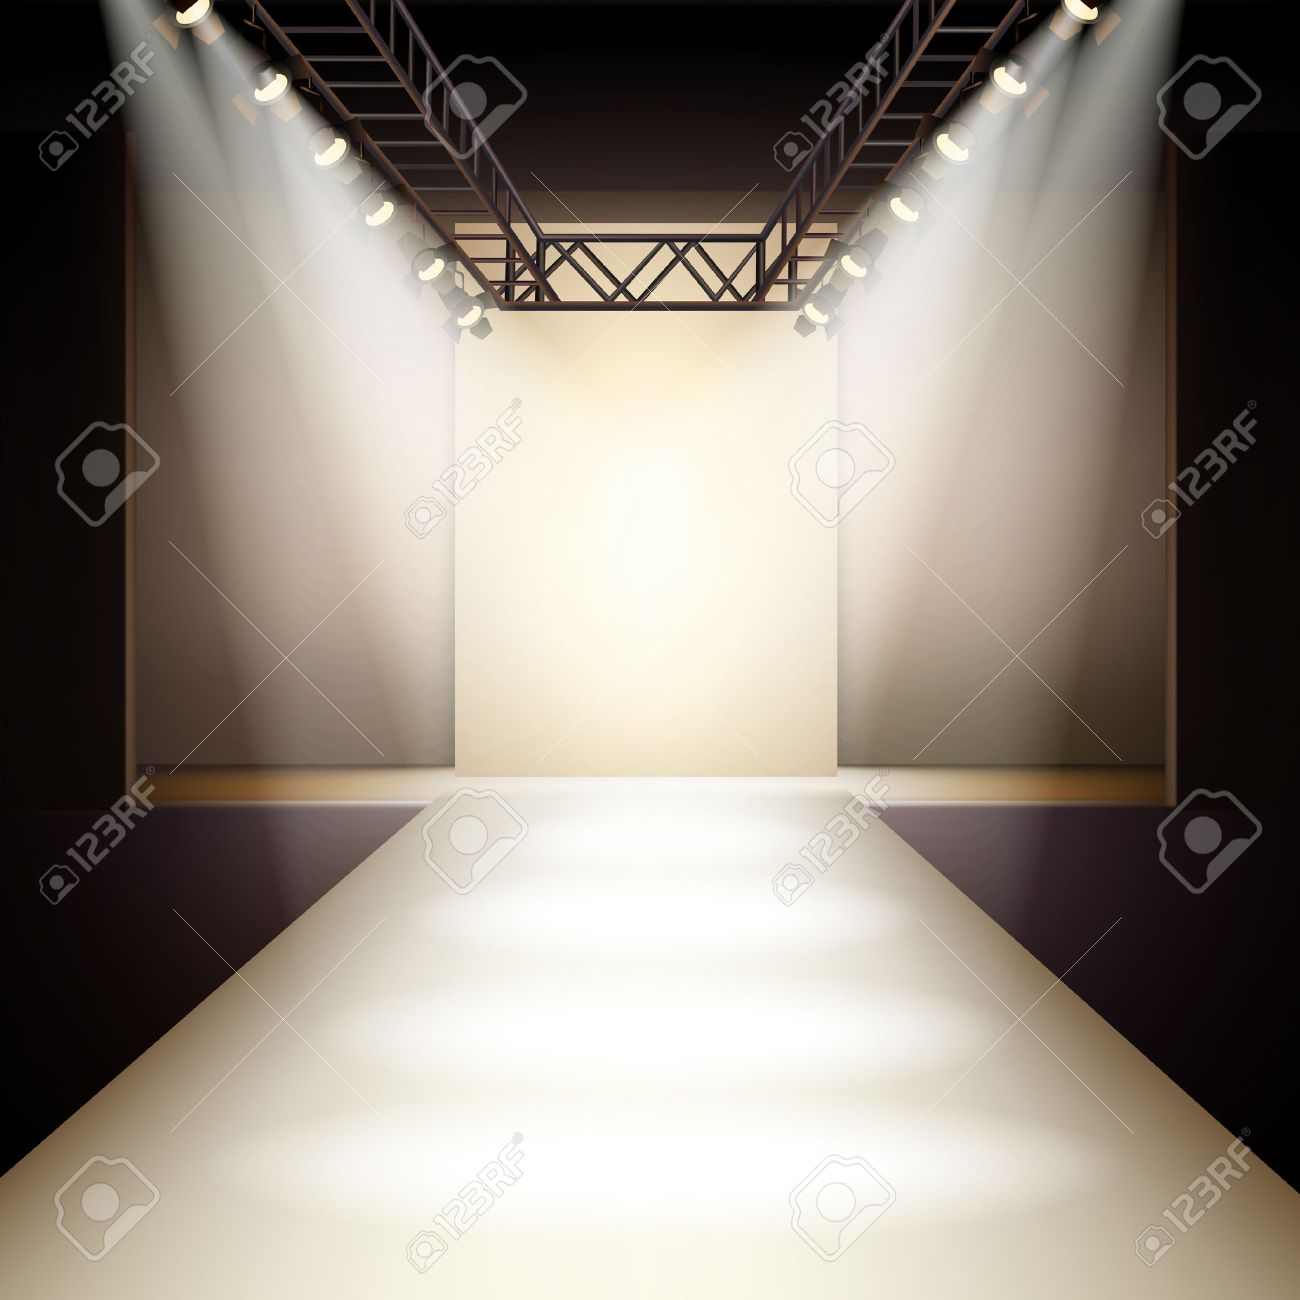 Empty fashion runway podium stage interior realistic background..